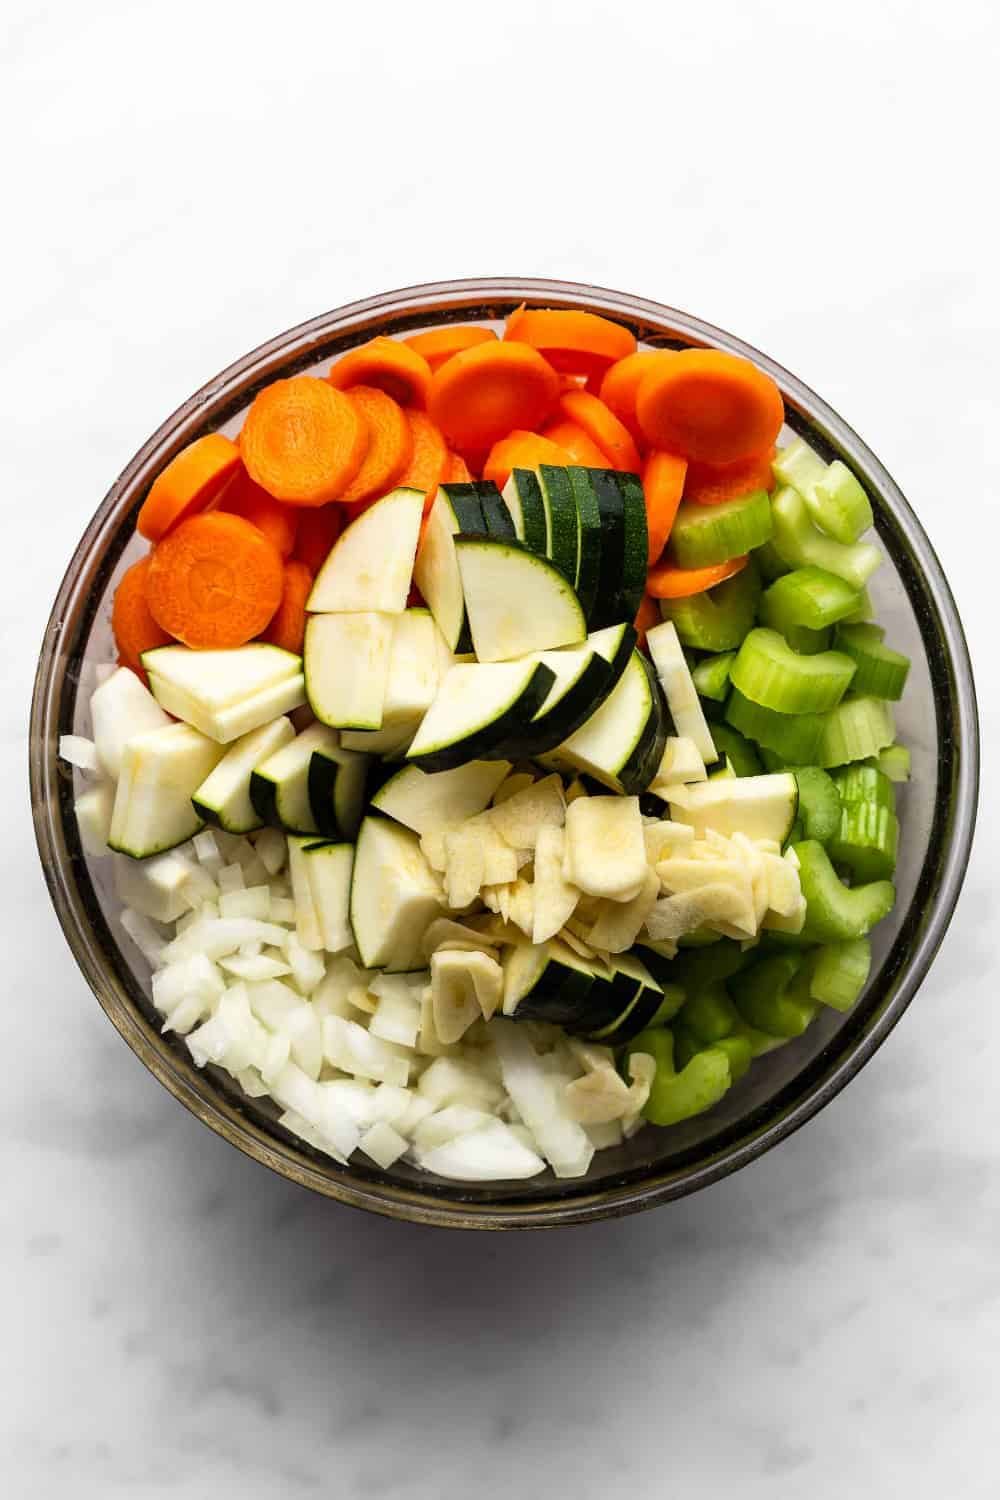 Overhead shot of diced onions, carrots, celery and zucchini in a bowl on a white surface